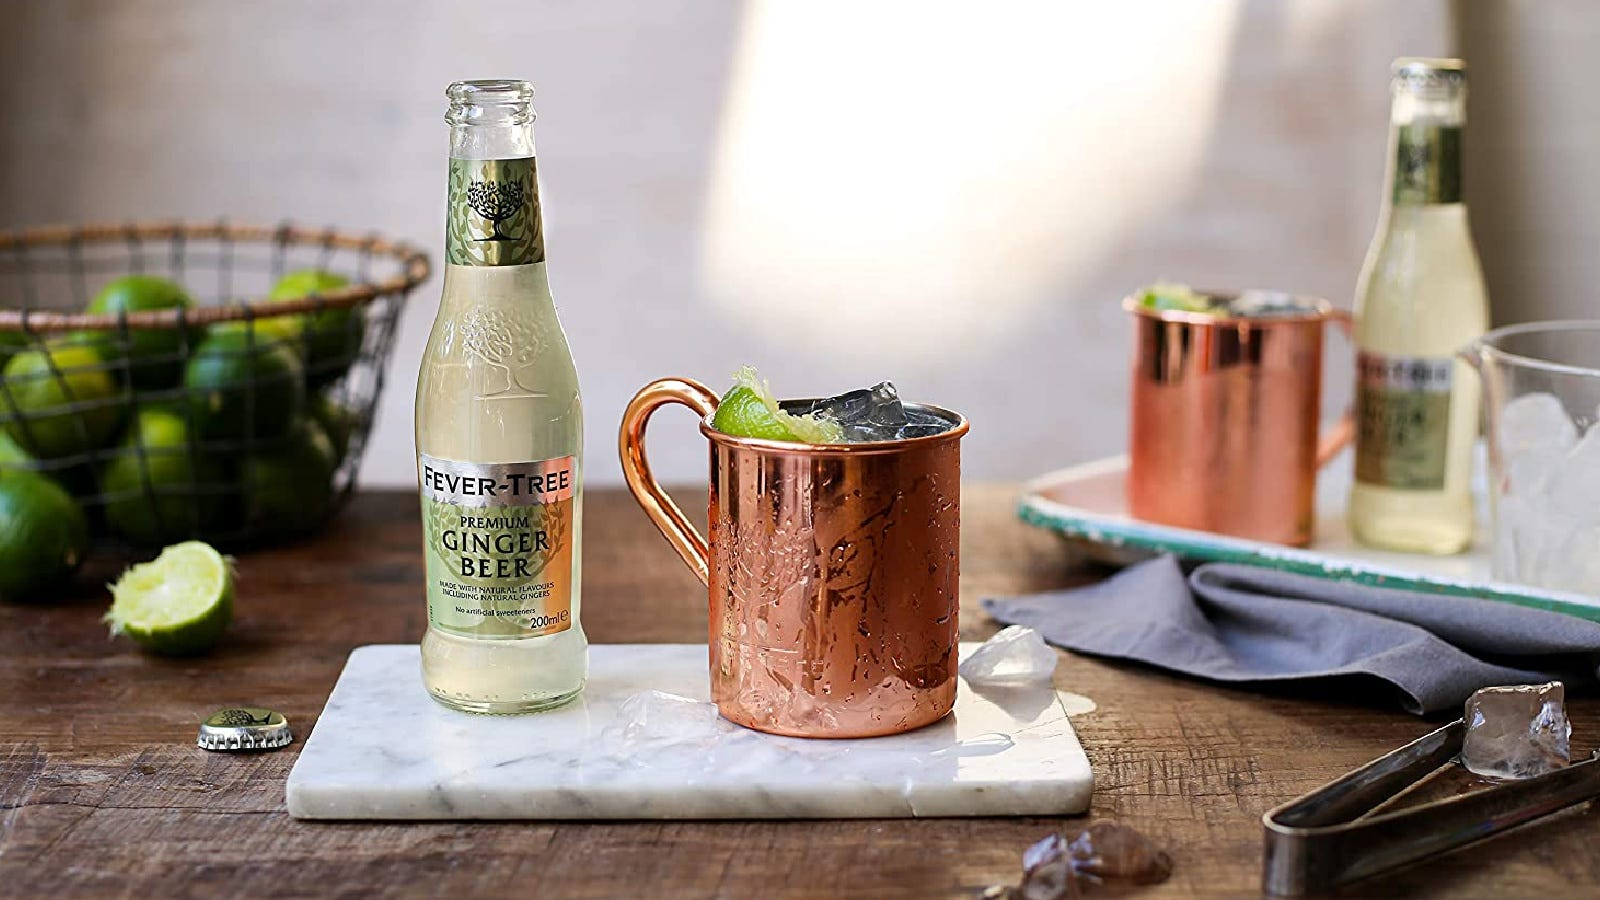 A bottle of Fever Tree ginger beer, along side of a Moscow mule with limes in the background.